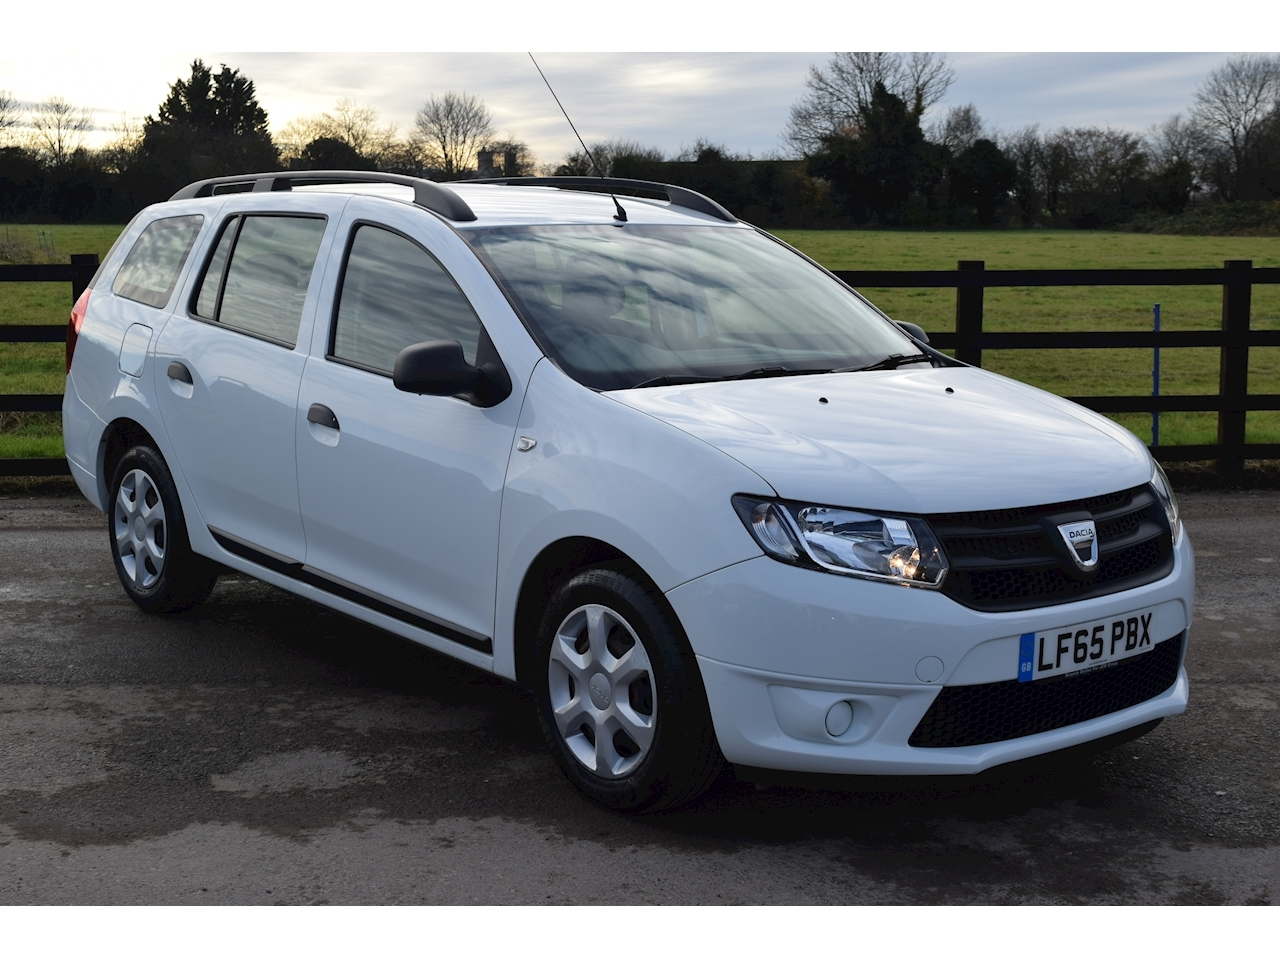 Dacia Logan Mcv Ambiance Tce Estate 0.9 Manual Petrol